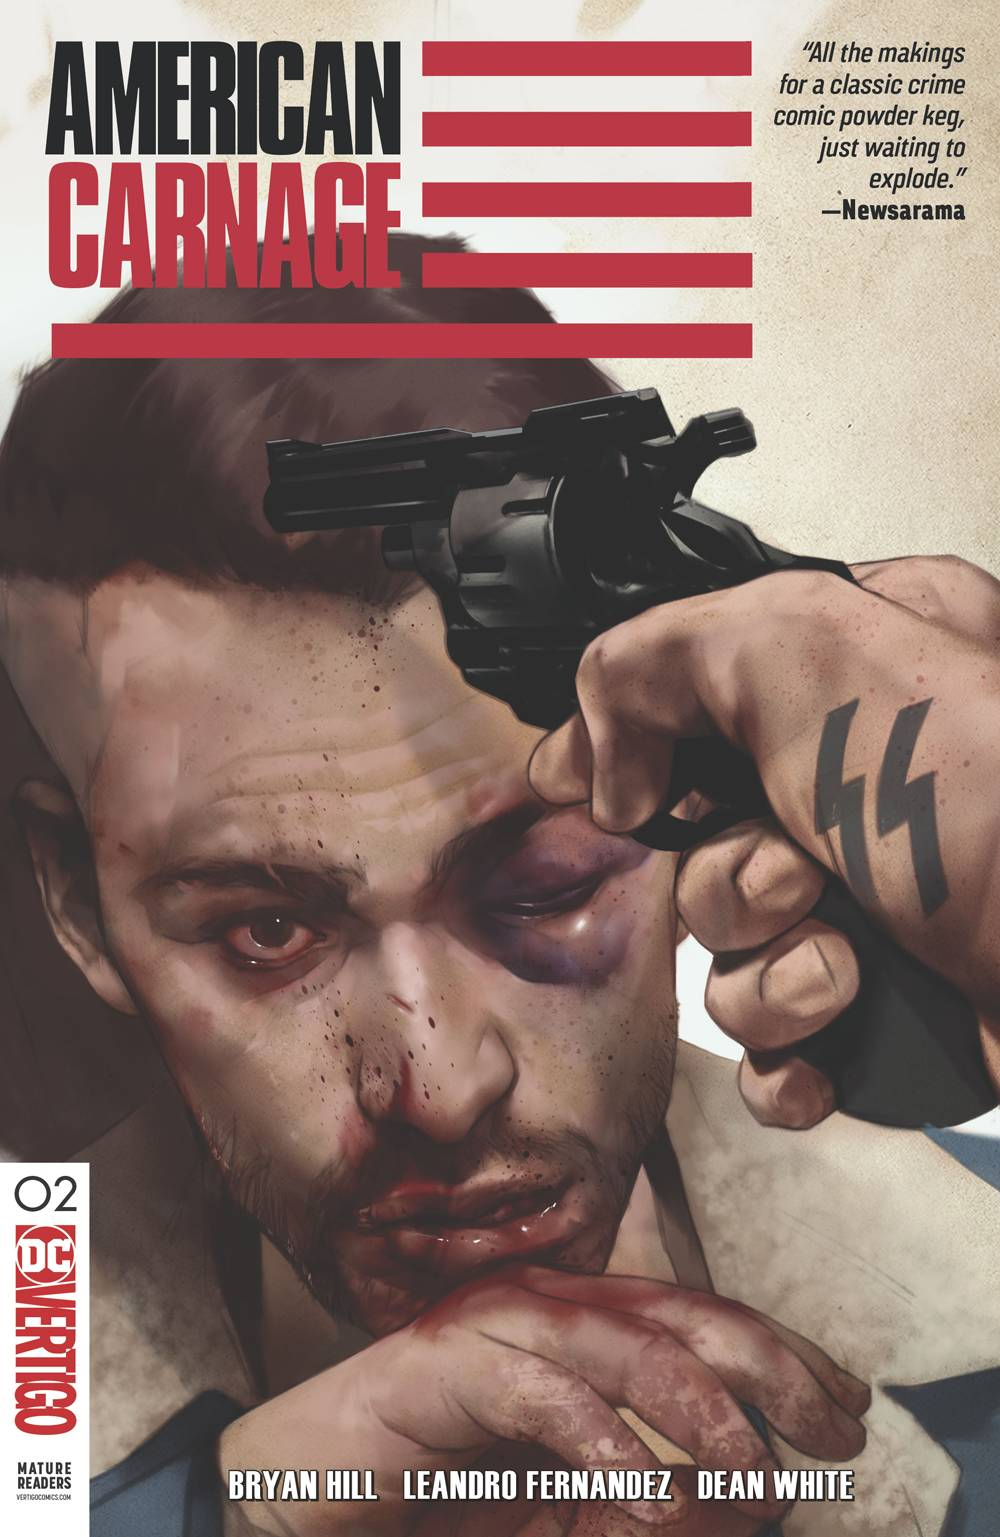 AMERICAN CARNAGE #2 (MR)